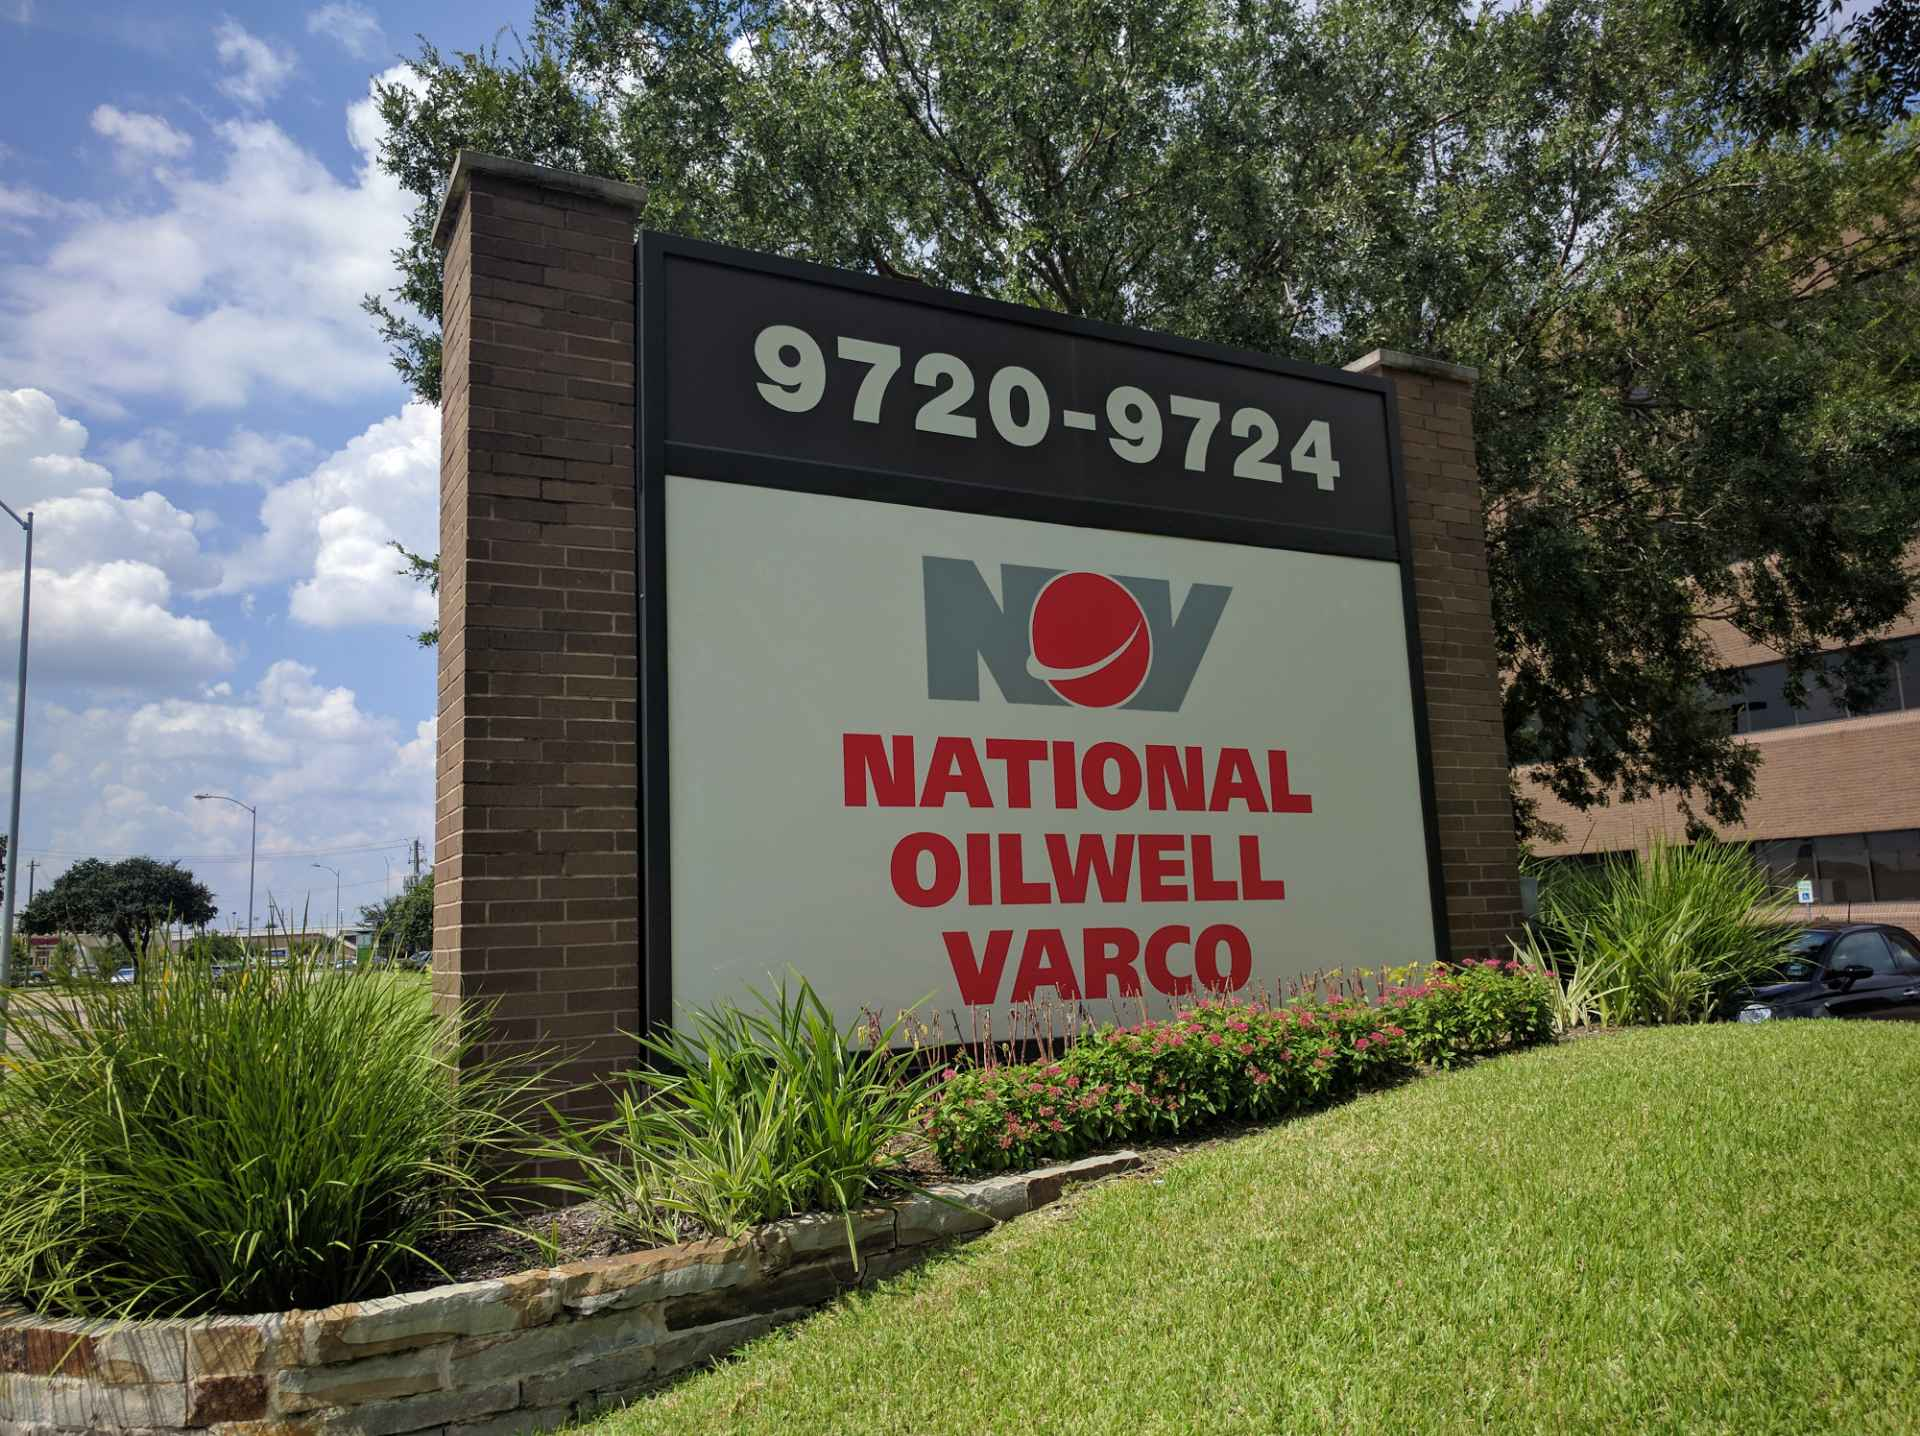 Entrance to National Oilwell Varco's corporate headquarters in Houston, Texas.